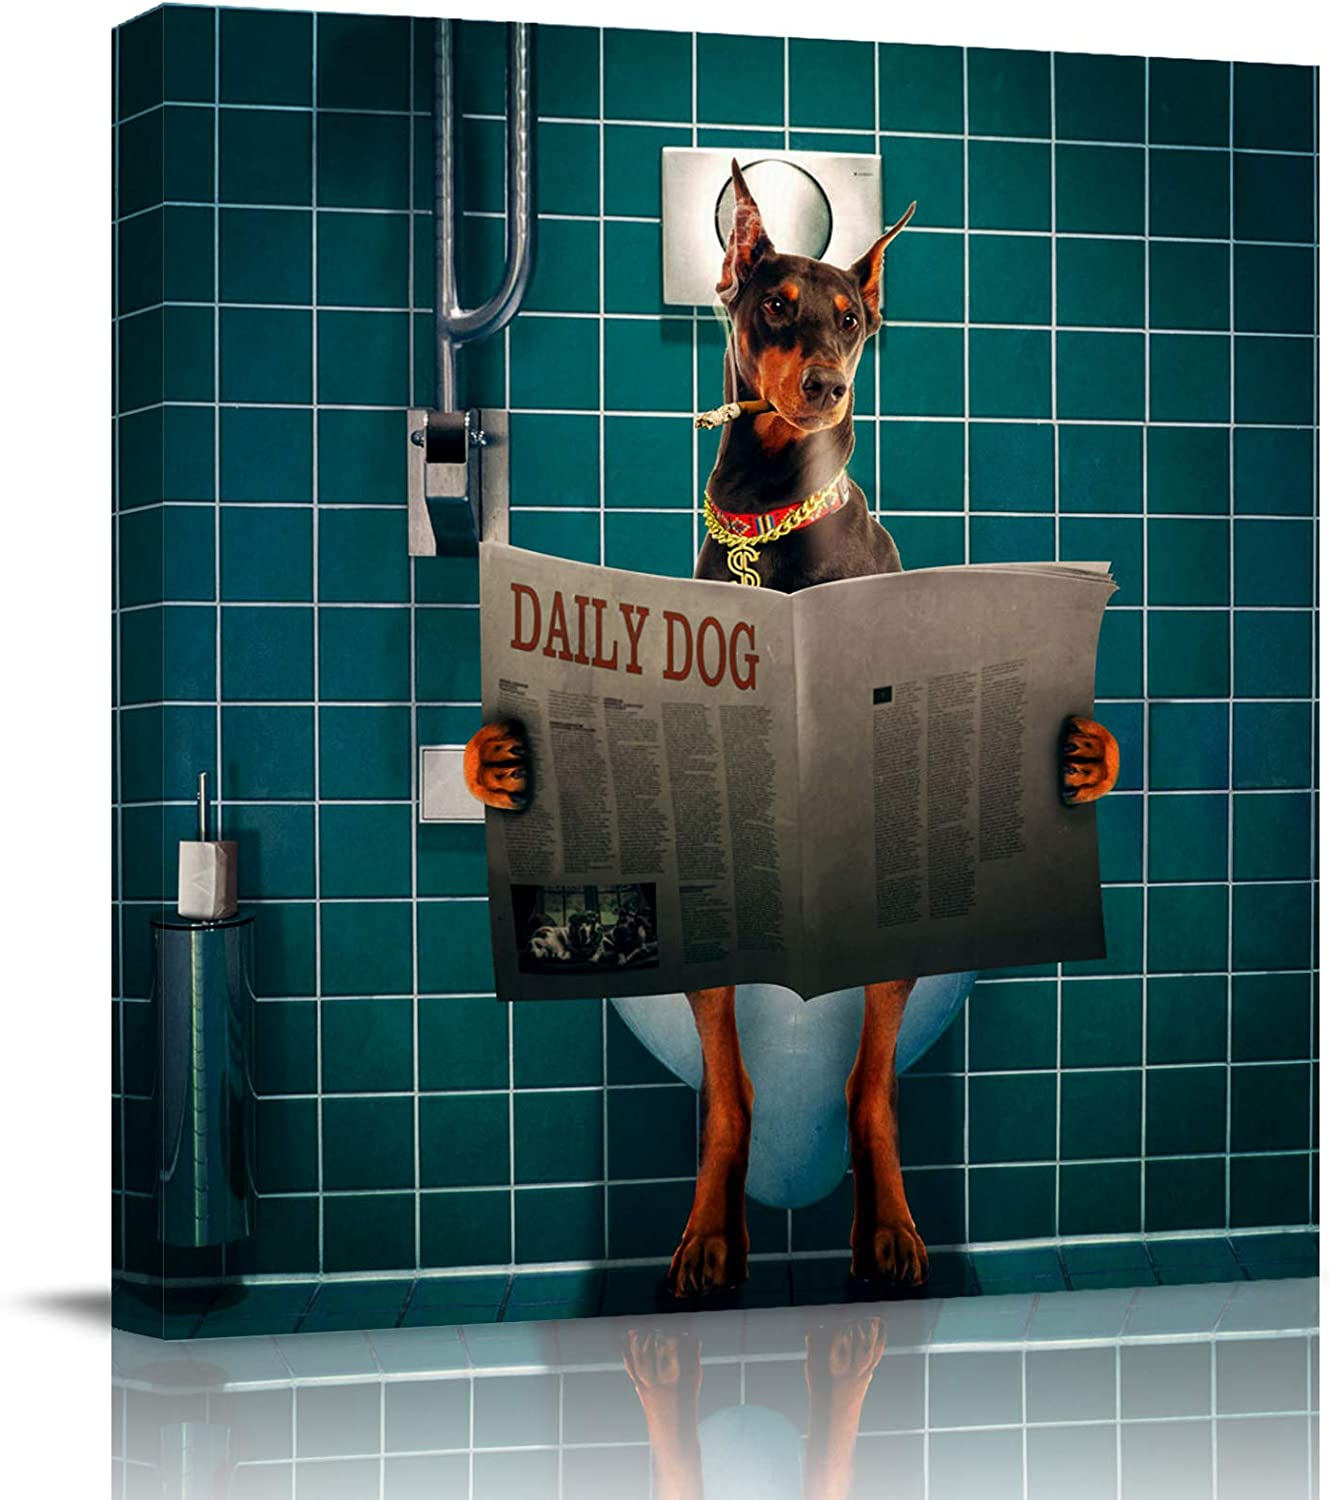 Chucoco Cool Doberman Dog Sitting on The Toilet Oil Paintings On Canvas Wall Art Plaid Back Abstract Print Artwork with Framed Ready to Hang, Living Room Kitchen Corridor Bedroom Office Decor